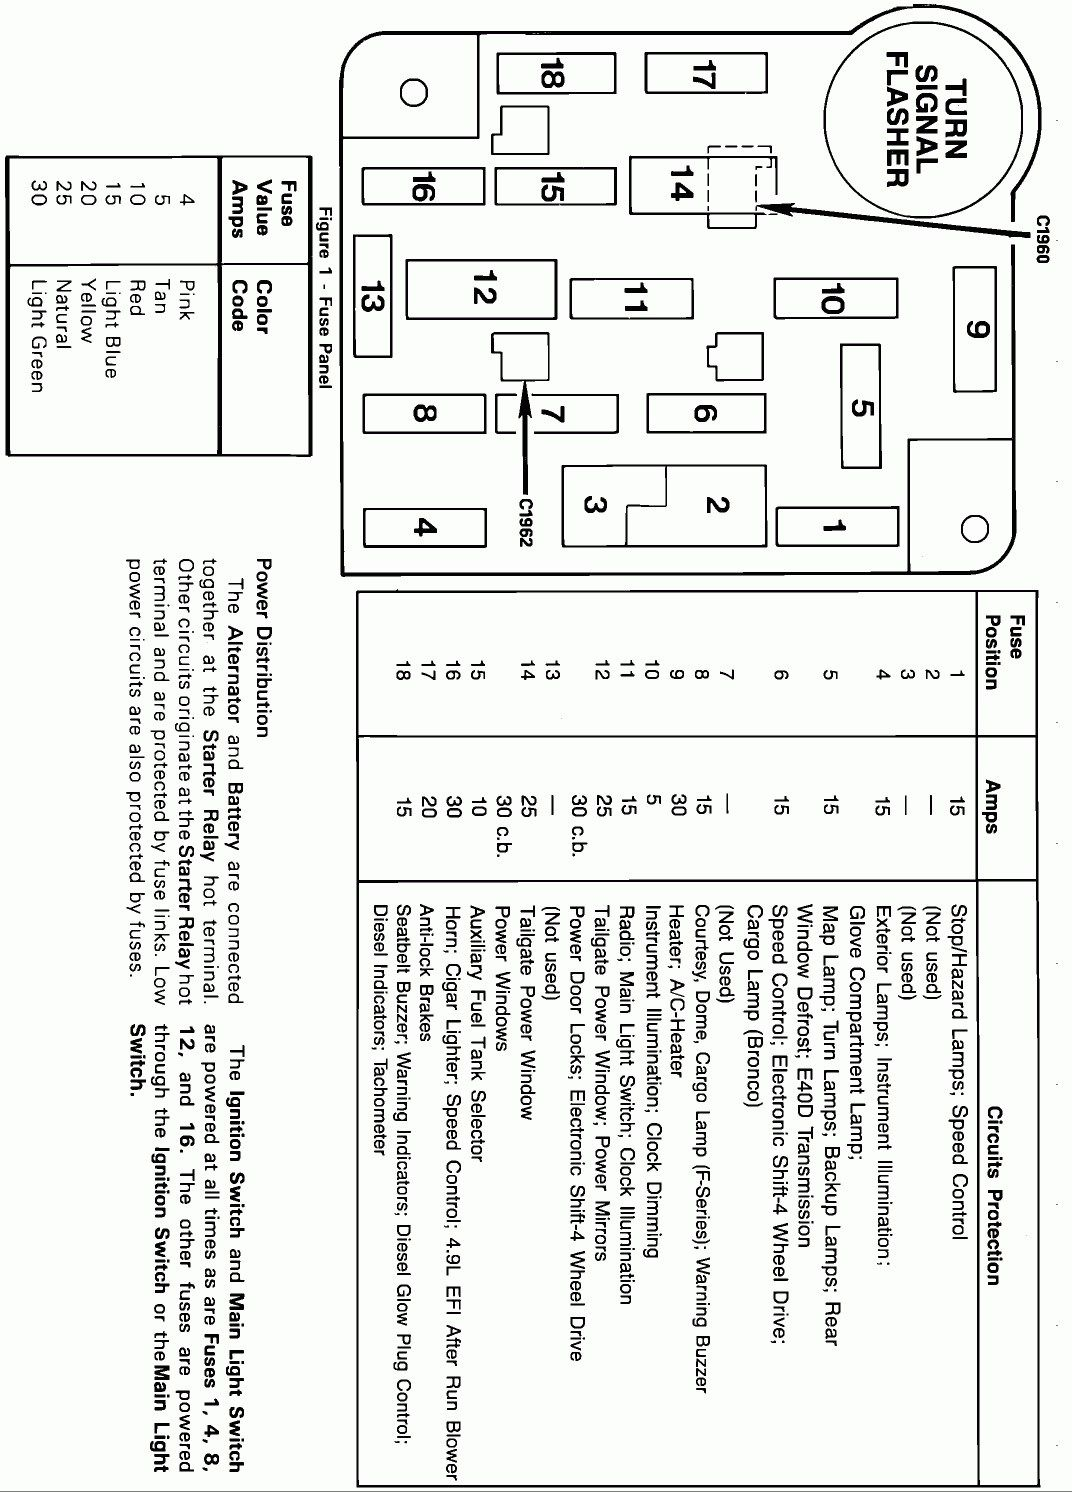 hight resolution of 1990 ranger fuse box wiring diagram paper89 f150 fuse diagram wiring schematic diagram 14 peg kassel